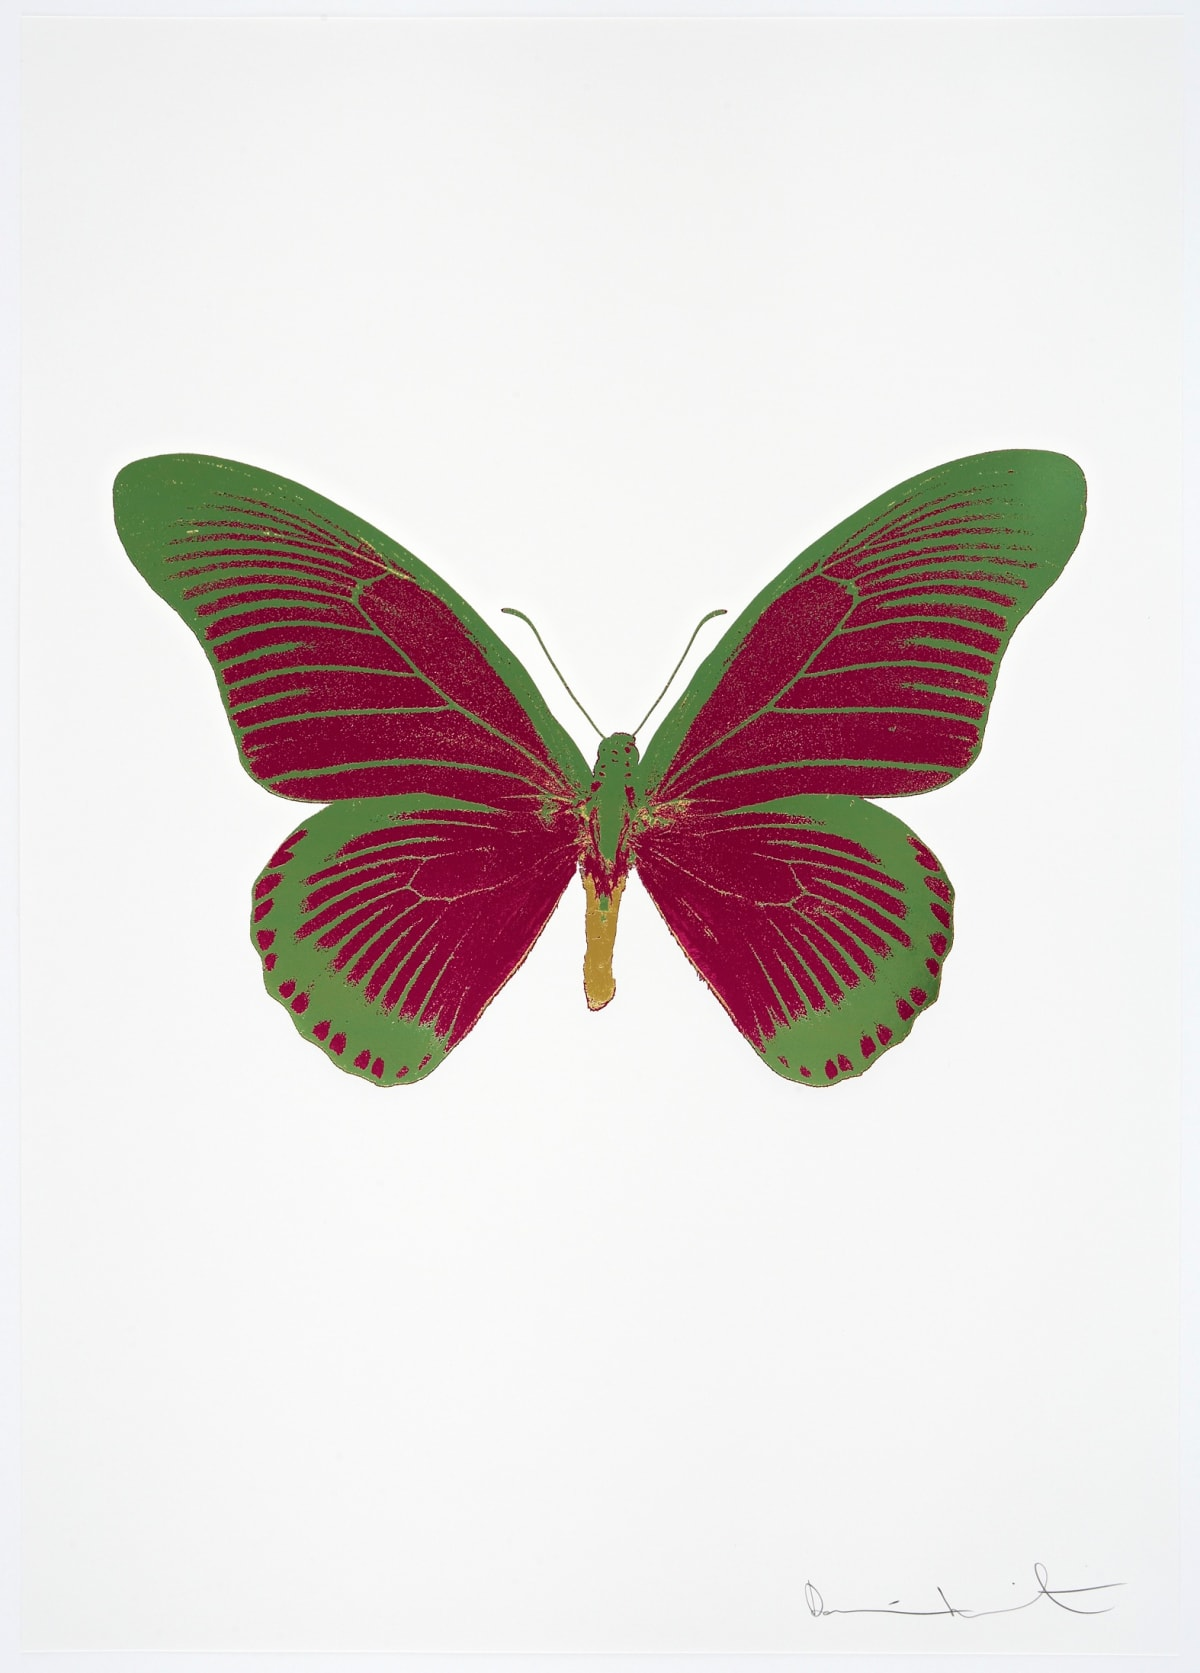 Damien Hirst The Souls IV - Fuchsia Pink/Leaf Green/Oriental Gold Damien Hirst butterfly foil print for sale Damien Hirst print for sale , 2010 3 colour foil block on 300gsm Arches 88 archival paper. Signed and numbered. Published by Paul Stolper and Other Criteria 72 x 51cm OC8057 / 1418-80 Edition of 15